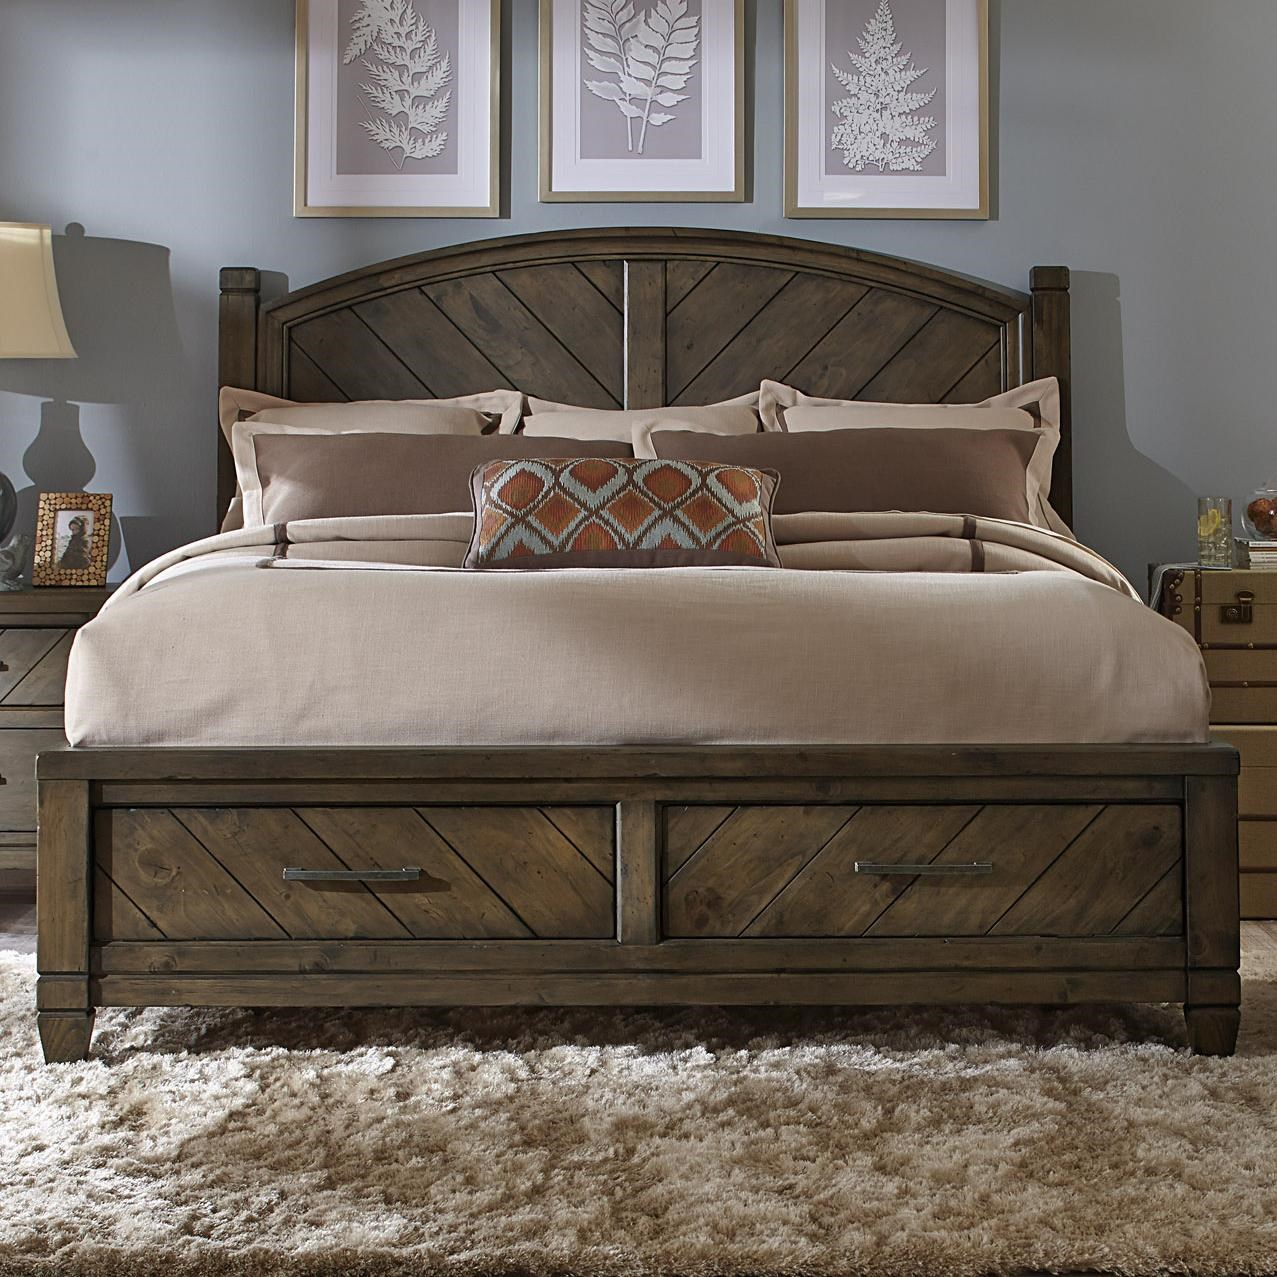 ... Furniture Modern Country Queen Storage Bed. Bed Shown May Not Represent  Exact Size Indicated